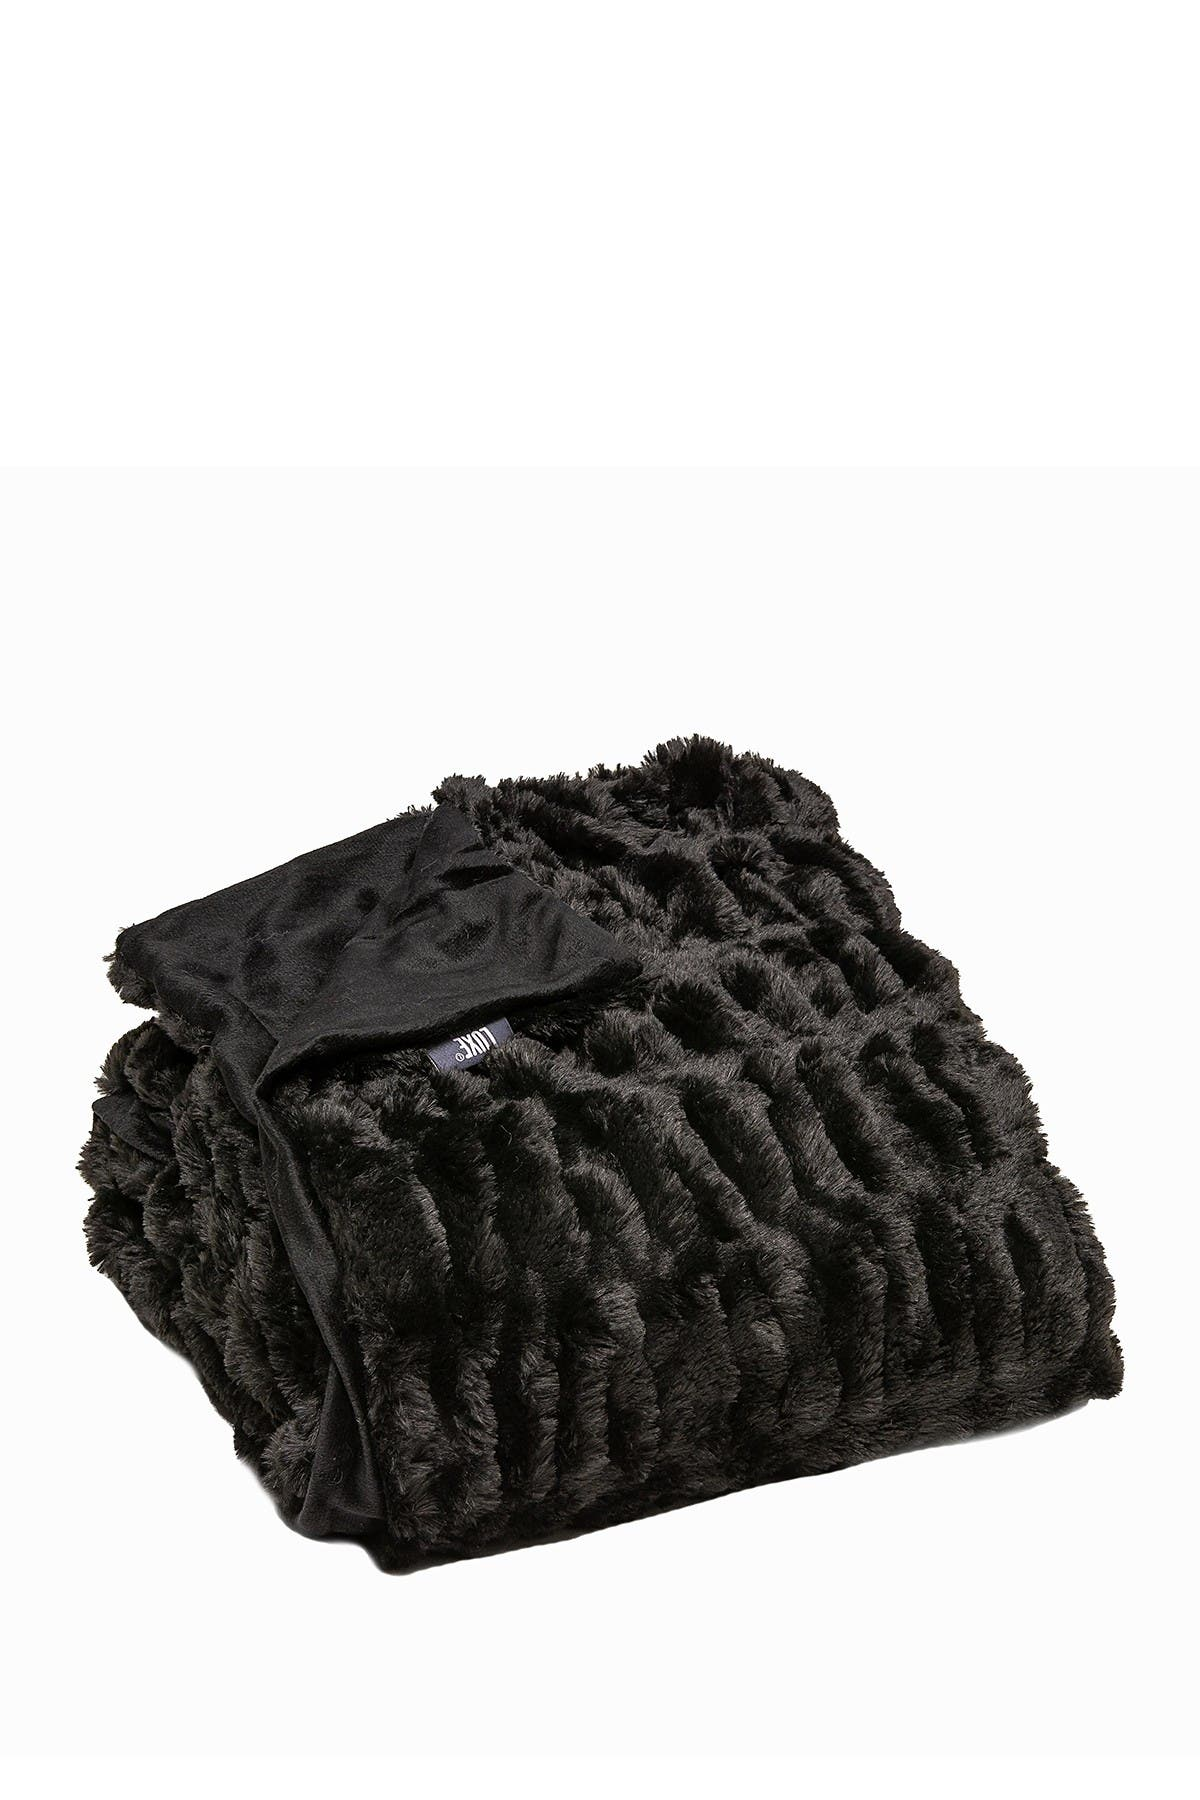 """Image of LUXE Faux Fur Throw - 50"""" x 60"""" - Cony Black"""